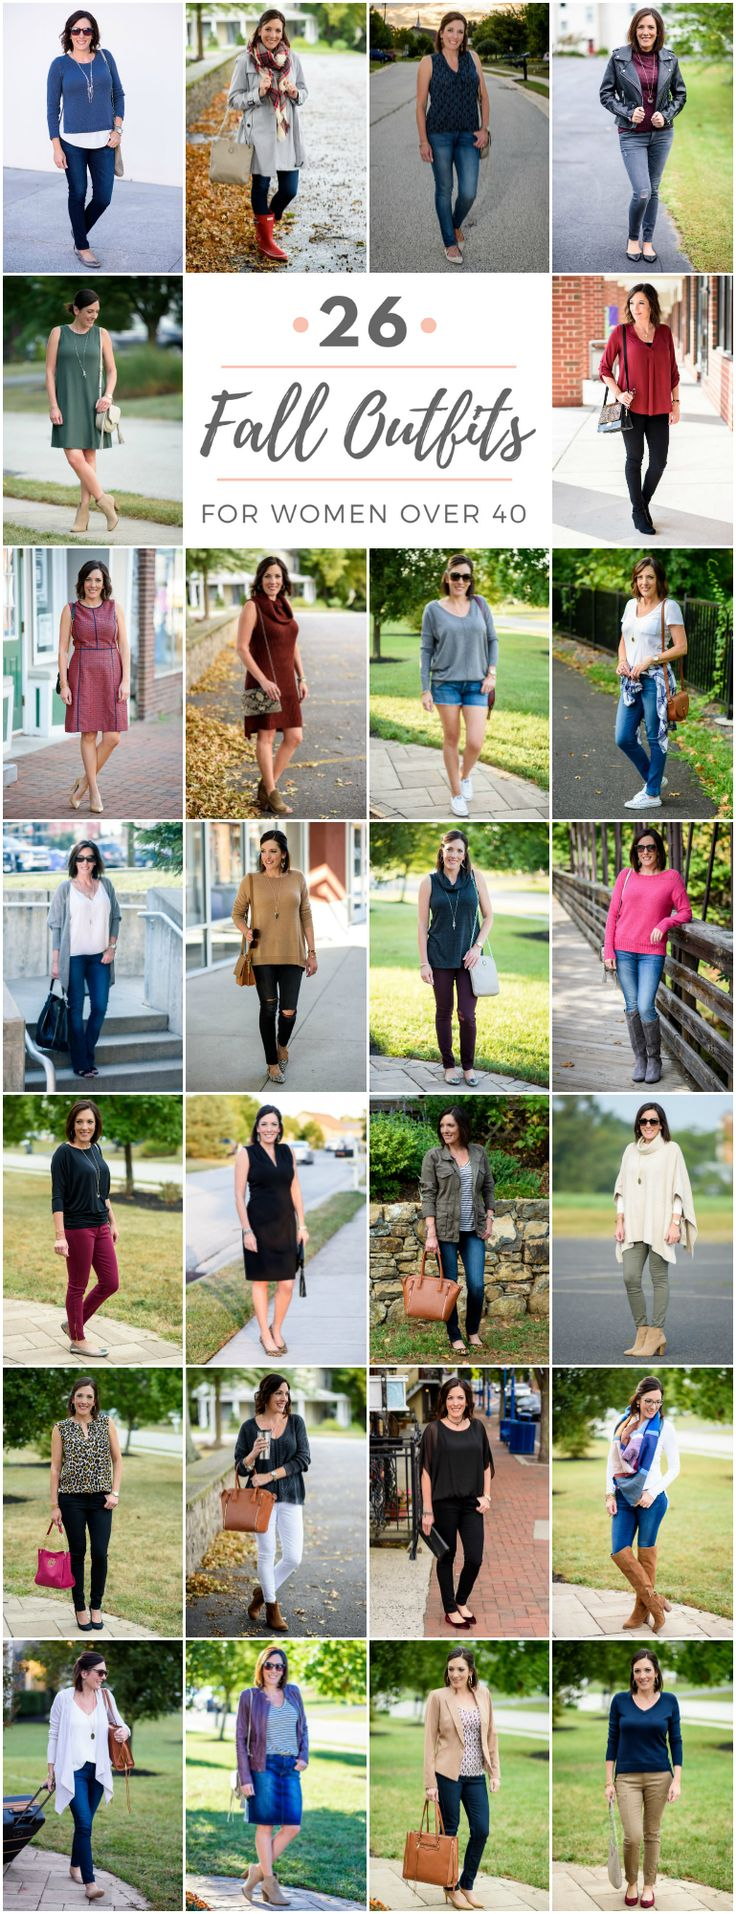 26 Wearable Fall Outfits for Women Over 40: Style for Real Life